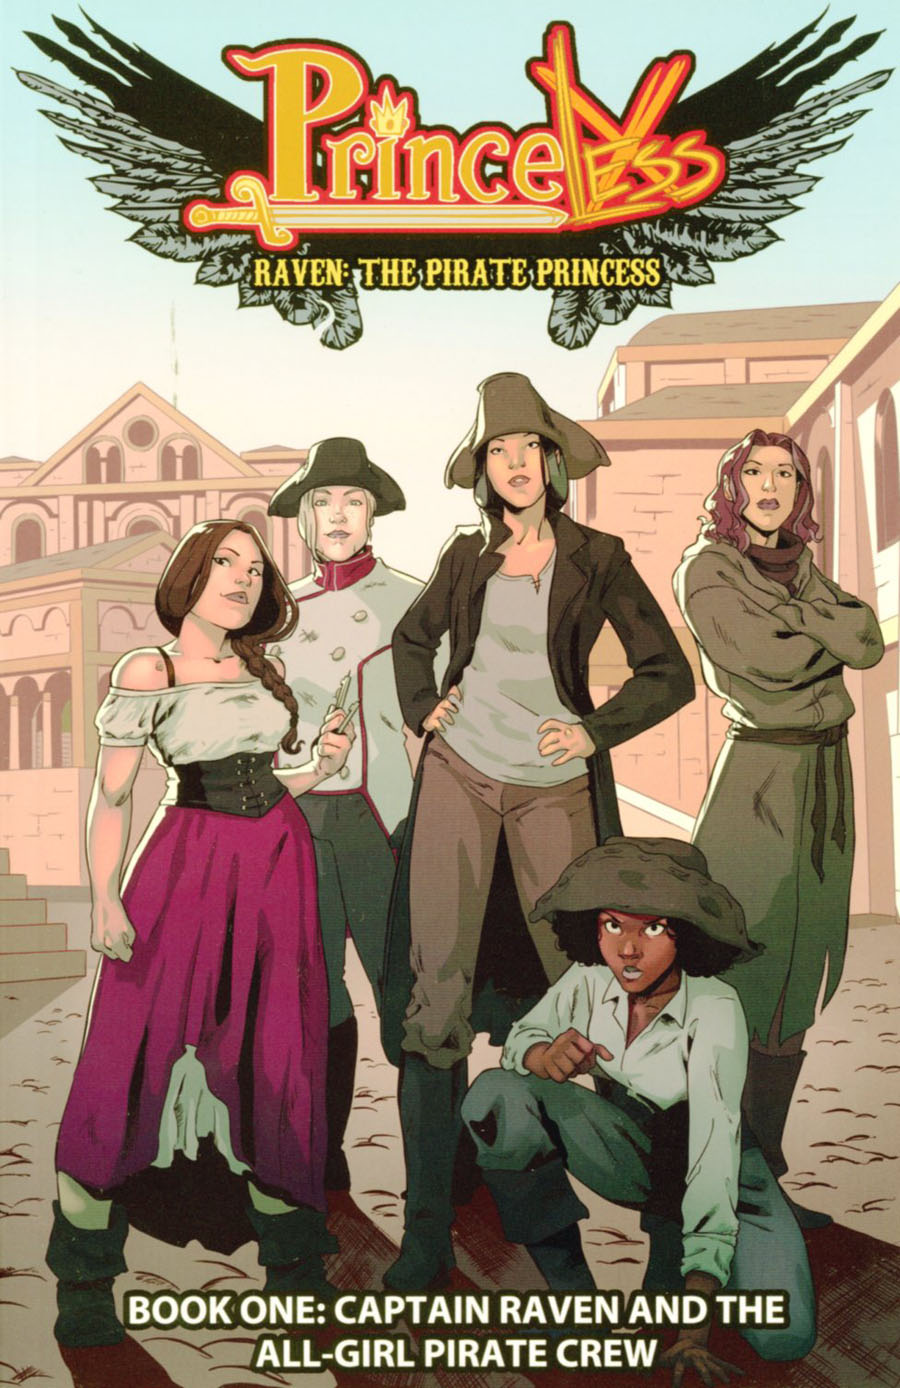 Princeless Raven The Pirate Princess Vol 1 Captain Raven And The All-Girl Pirate Crew TP